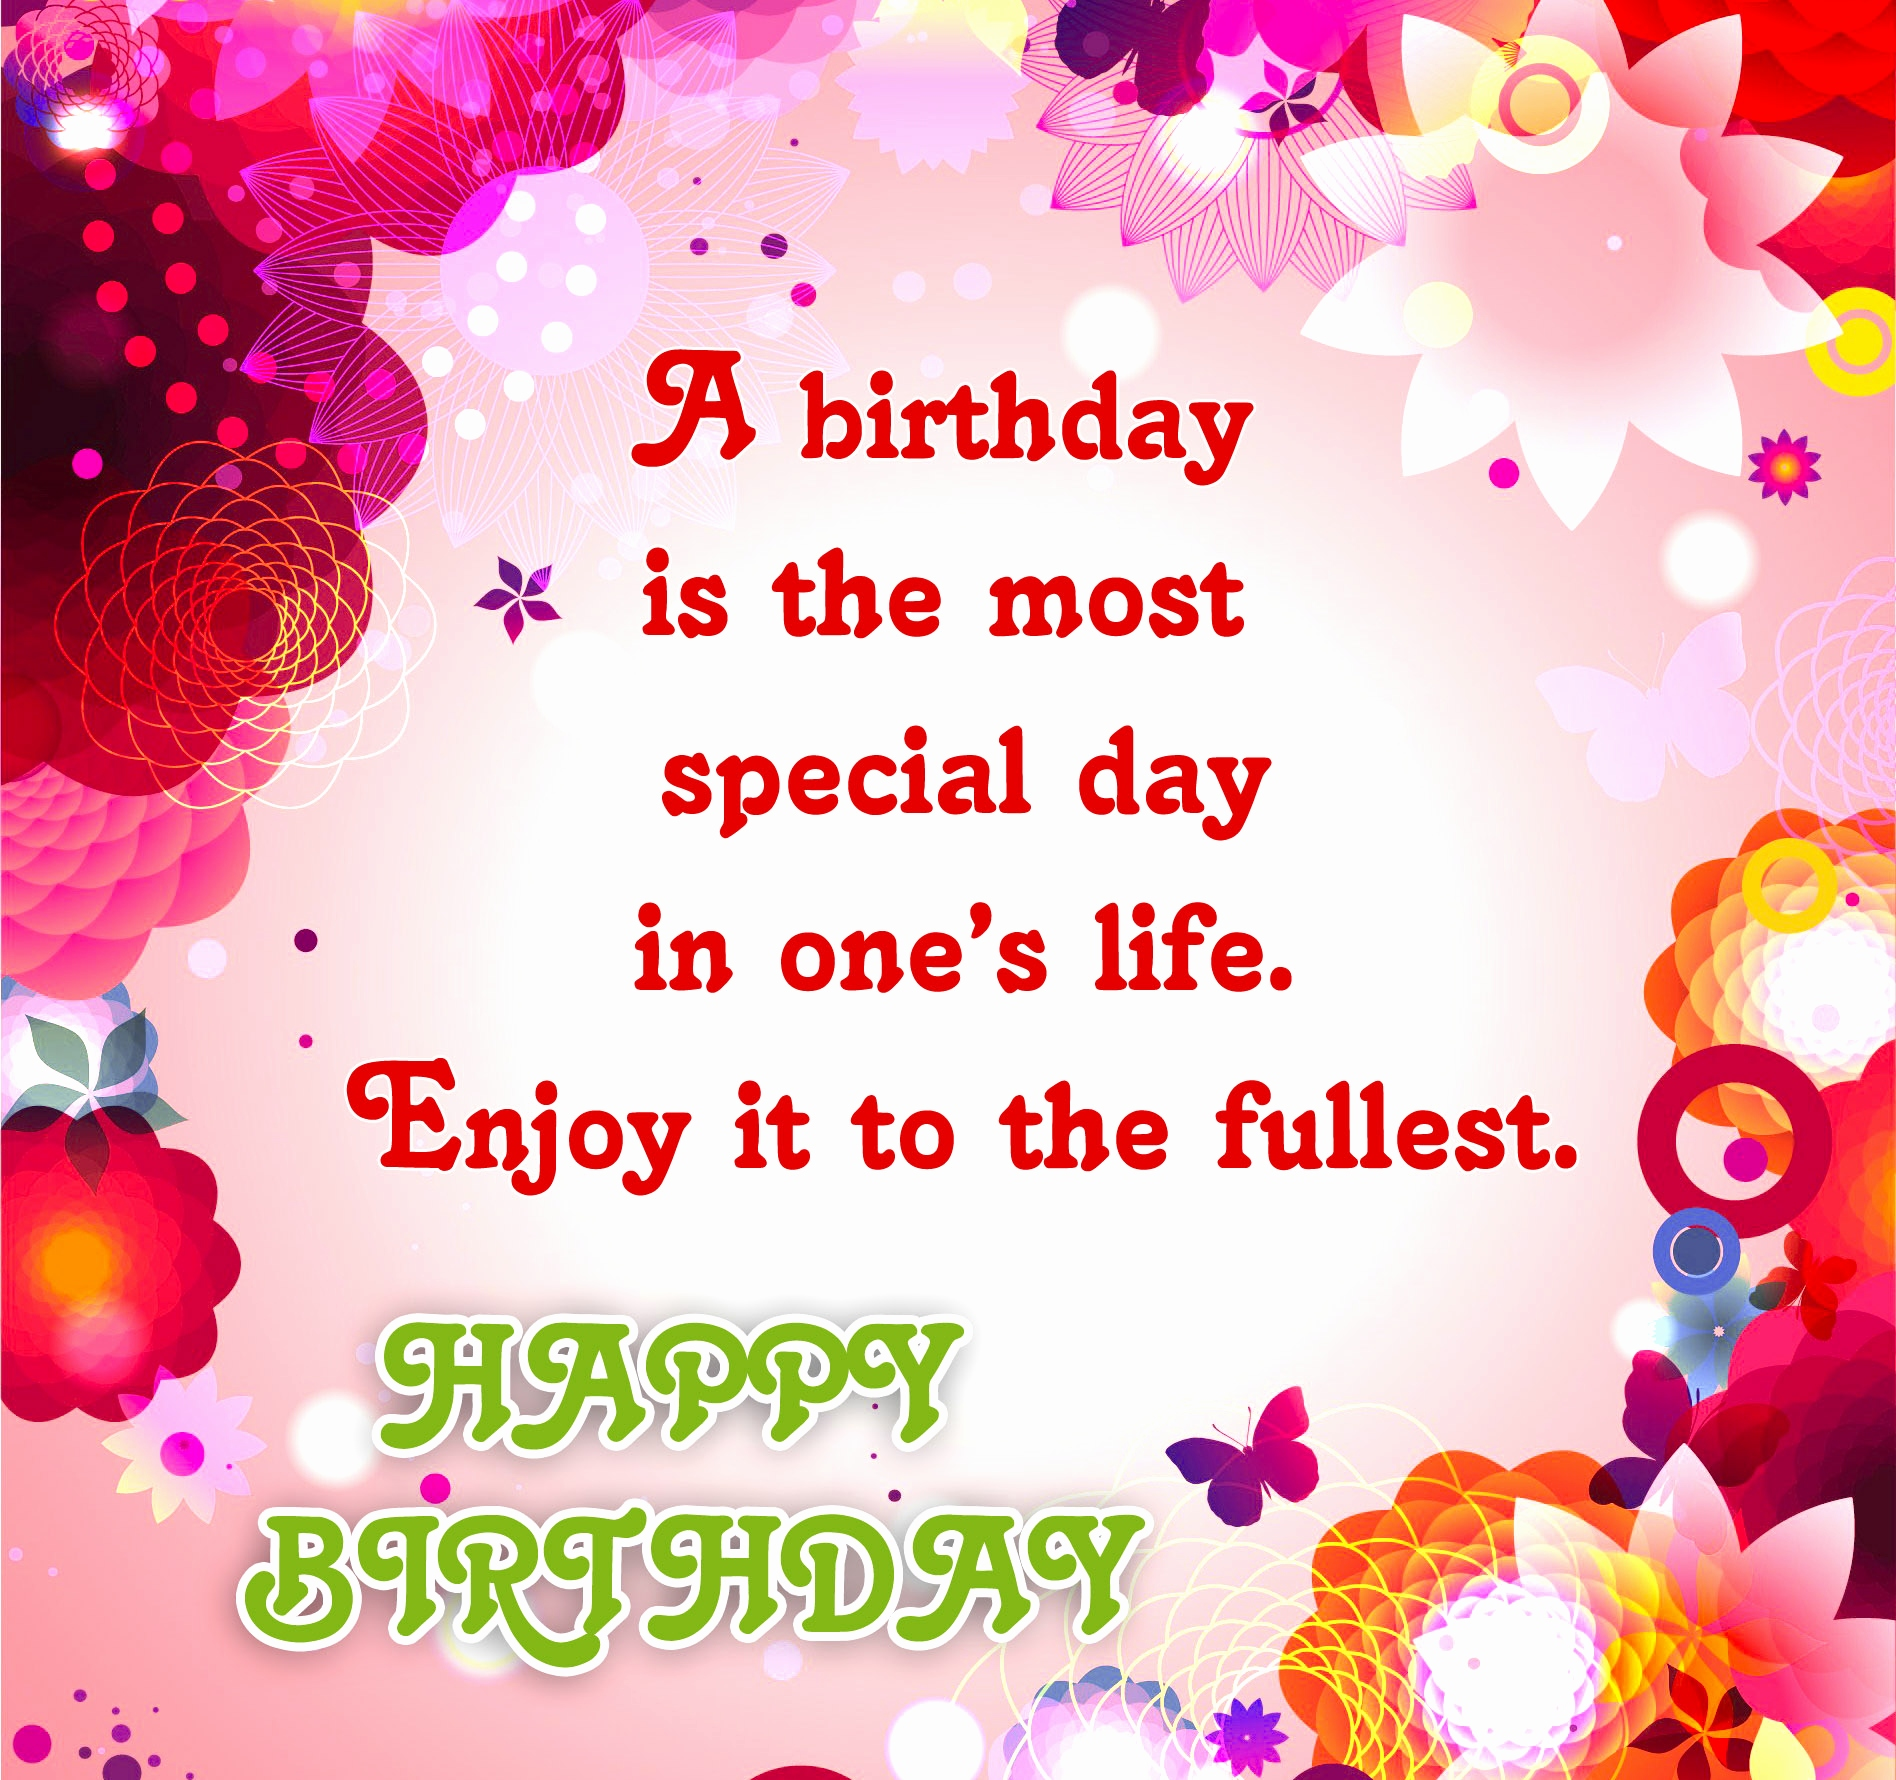 kochu tv birthday wishes photo upload online ; happy-birthday-wishes-cards-inspirational-birthday-acaa-greeting-cards-animated-gifs-of-happy-birthday-wishes-cards